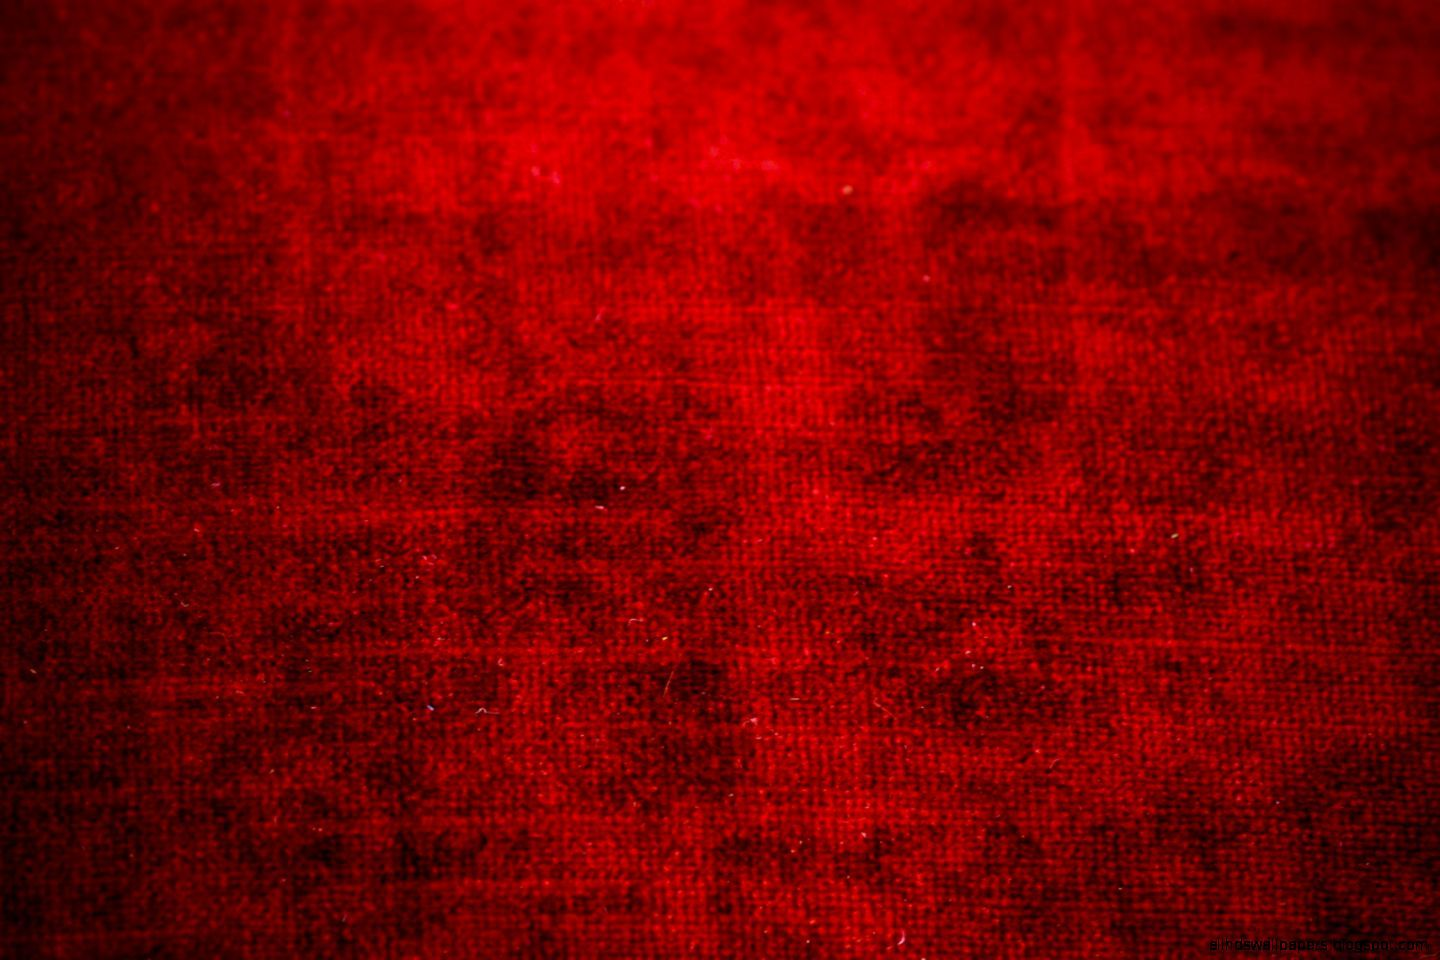 Red seamless wallpaper pattern   Stock Vector   Colourbox